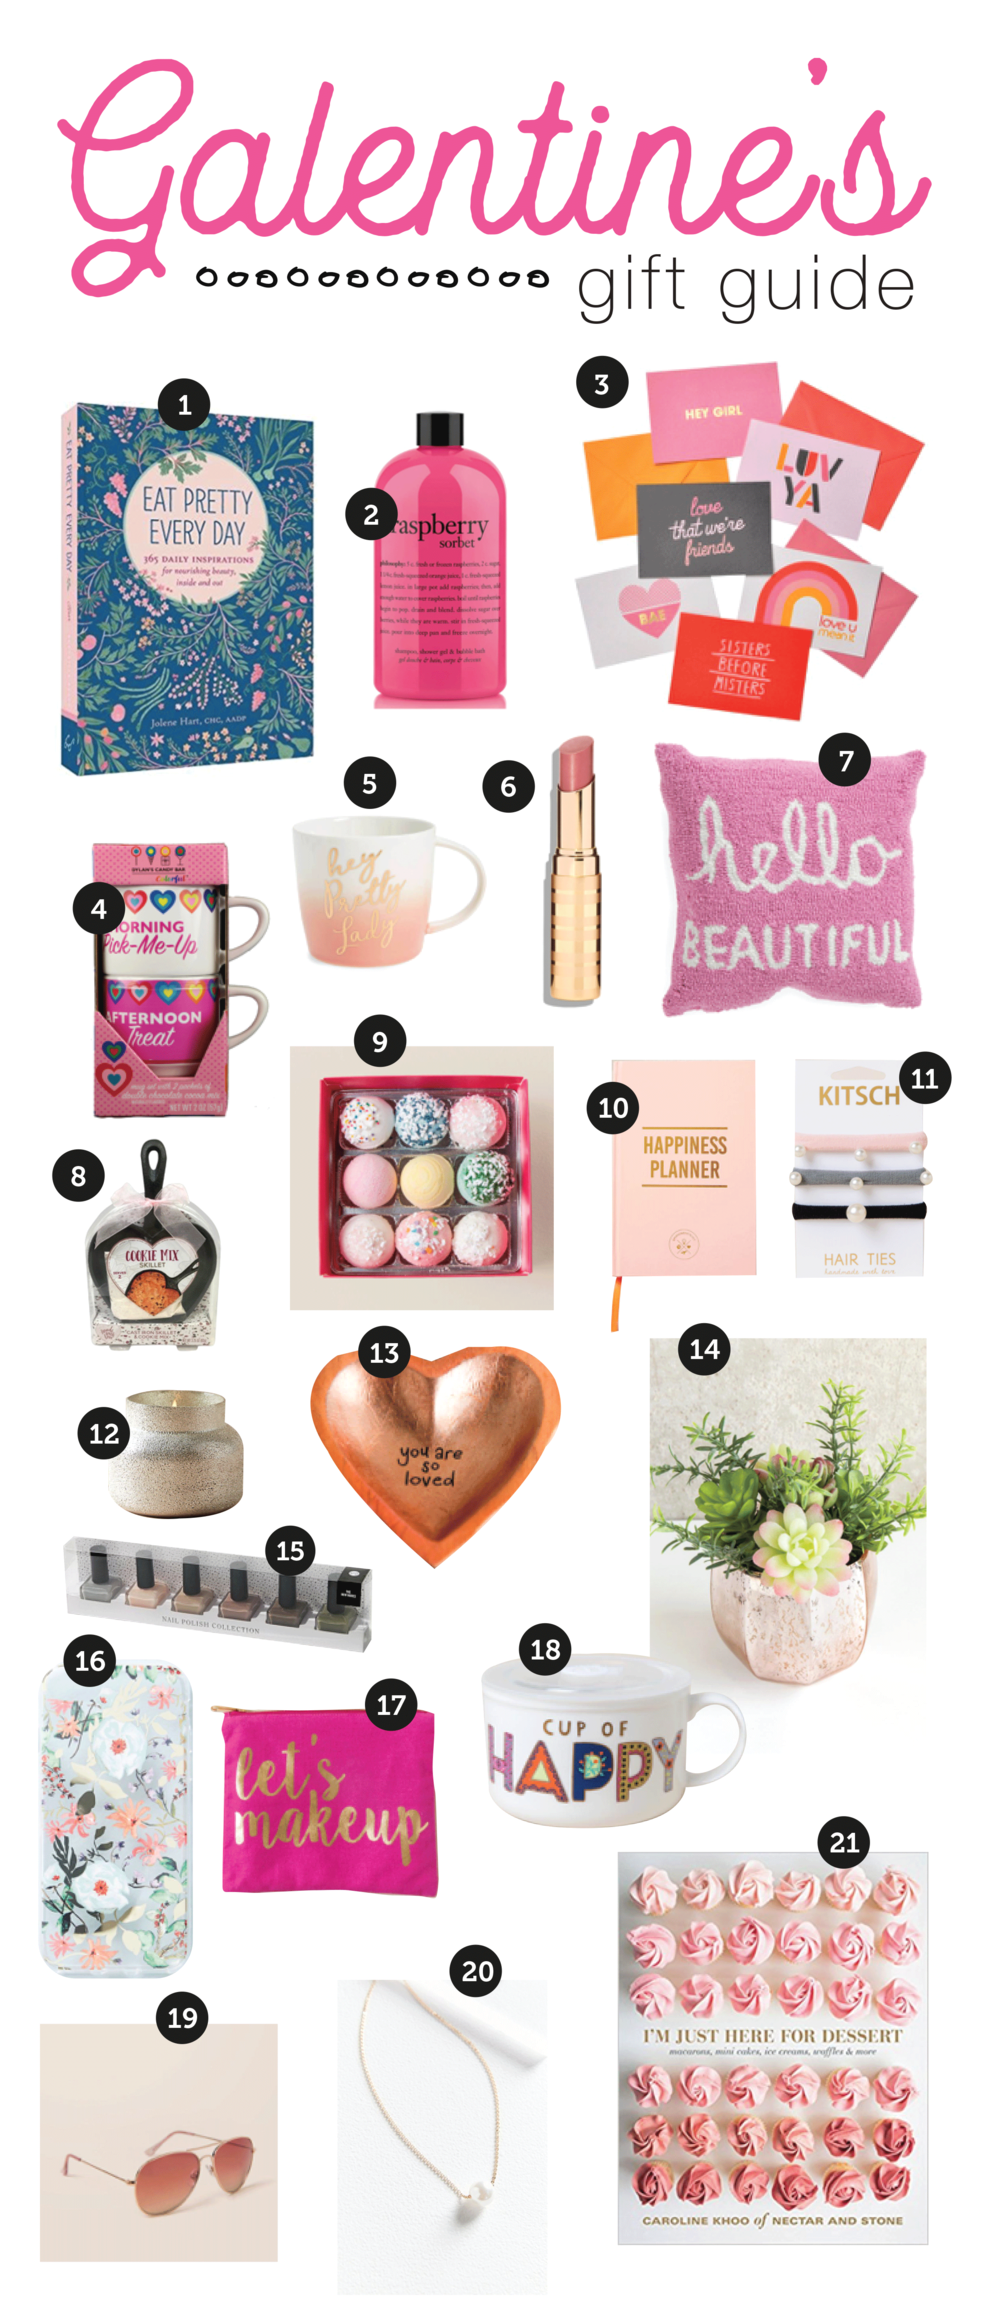 Galentines-Gift-Guide.png